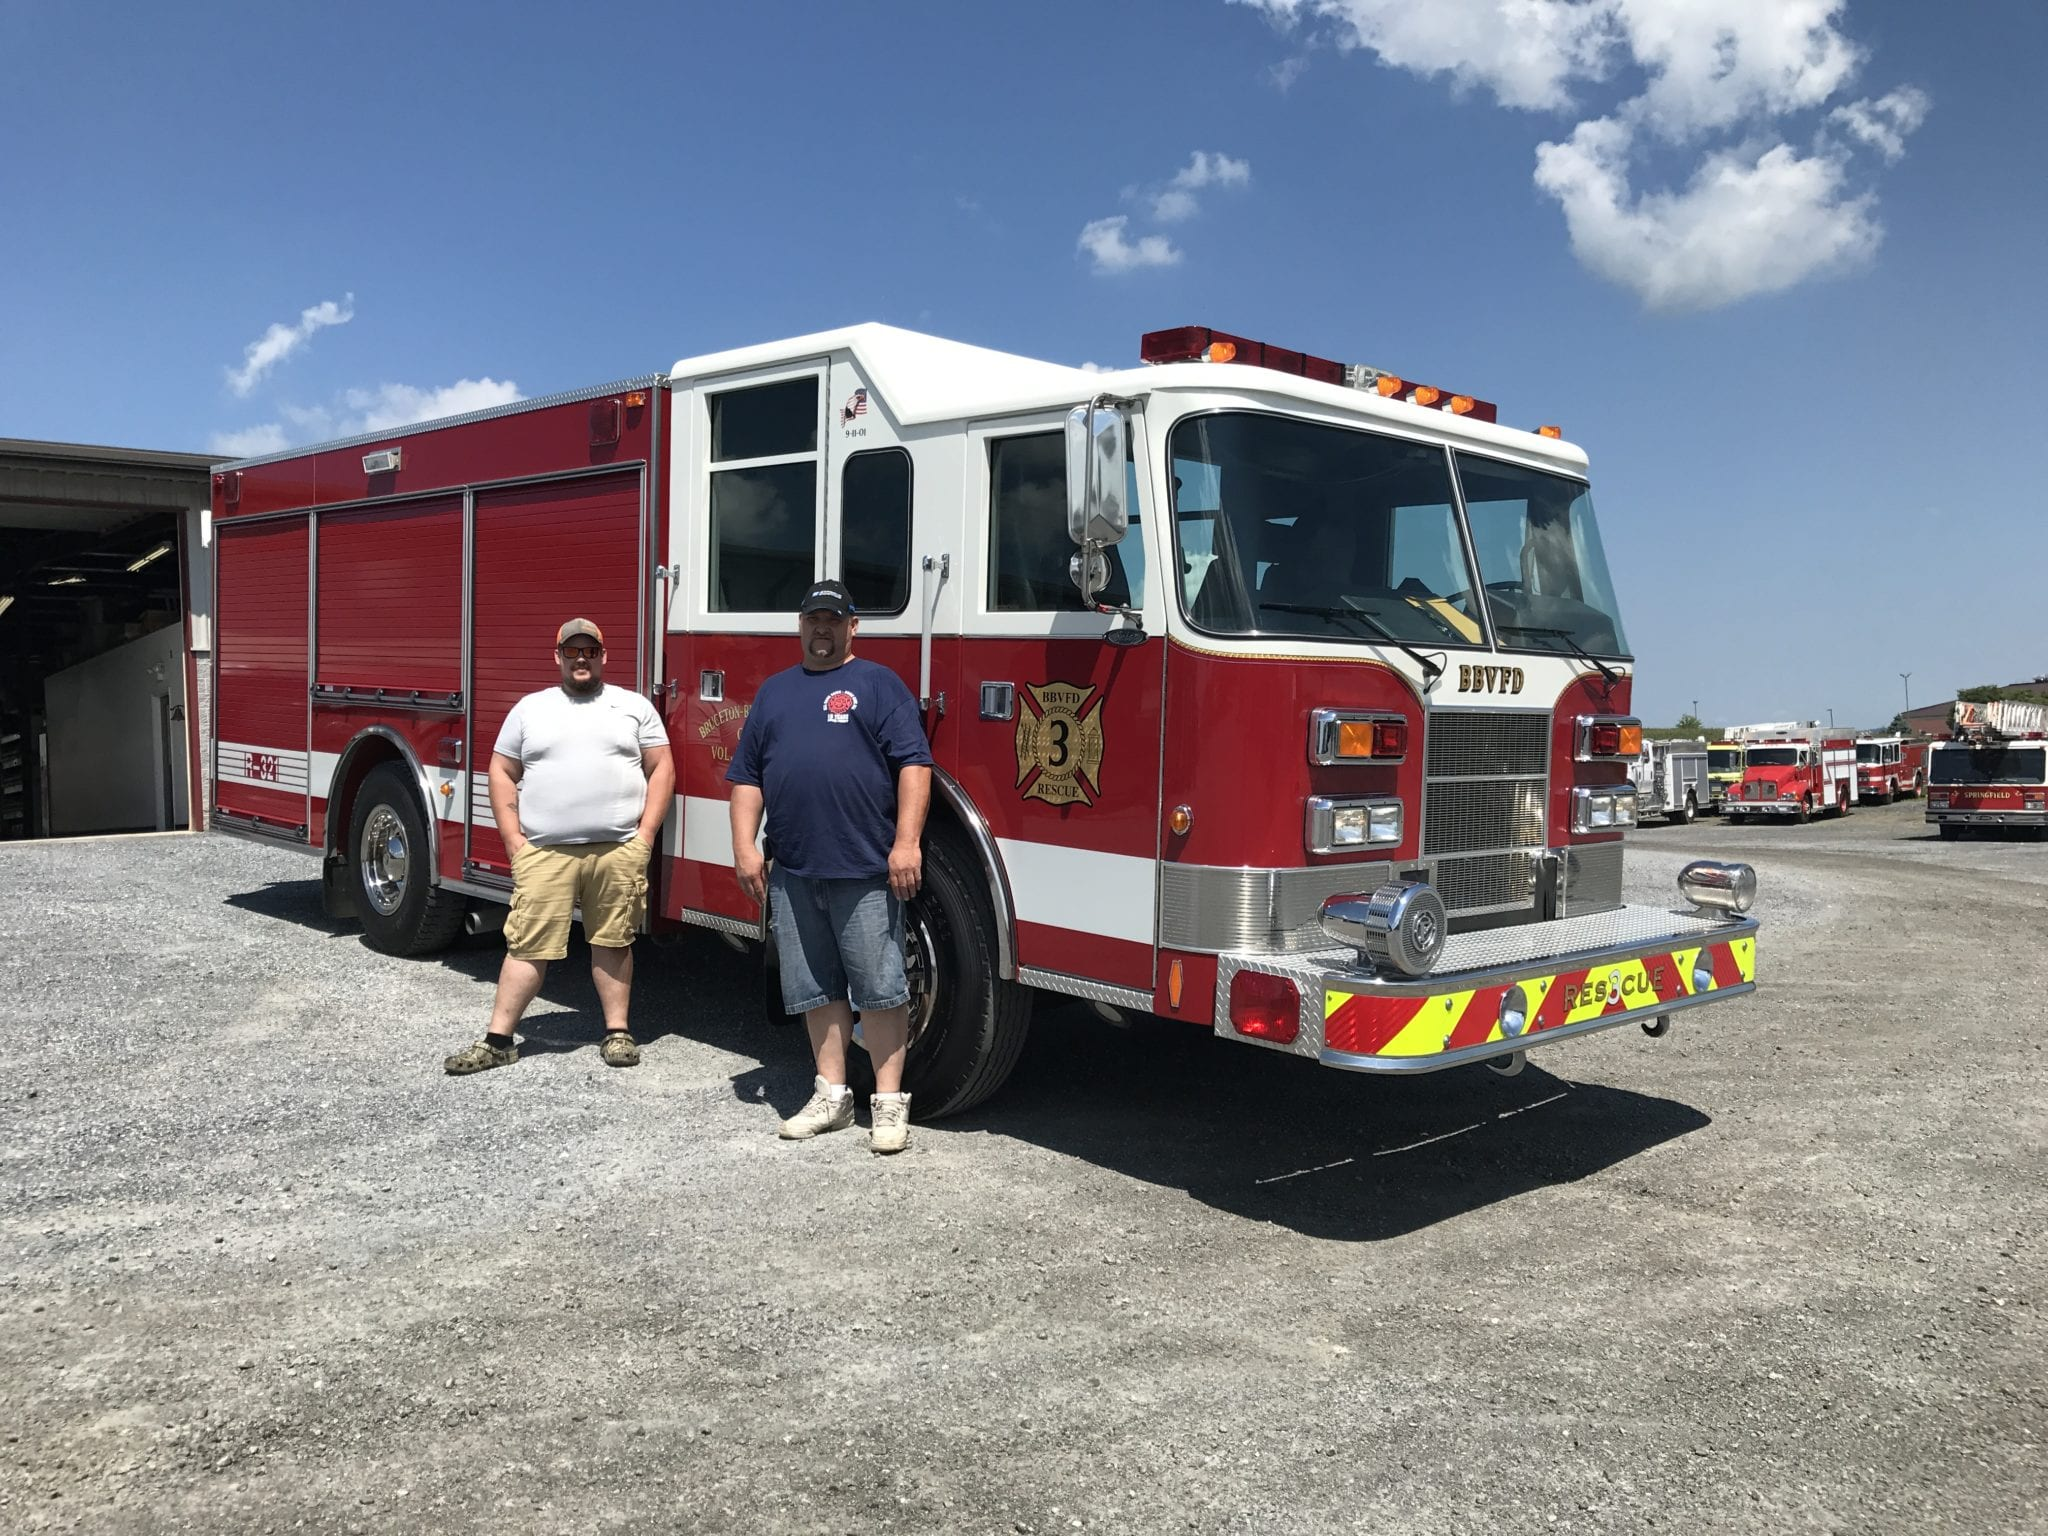 Used Fire Trucks For Sale >> Used Fire Trucks I Apparatus I Equipment Sales